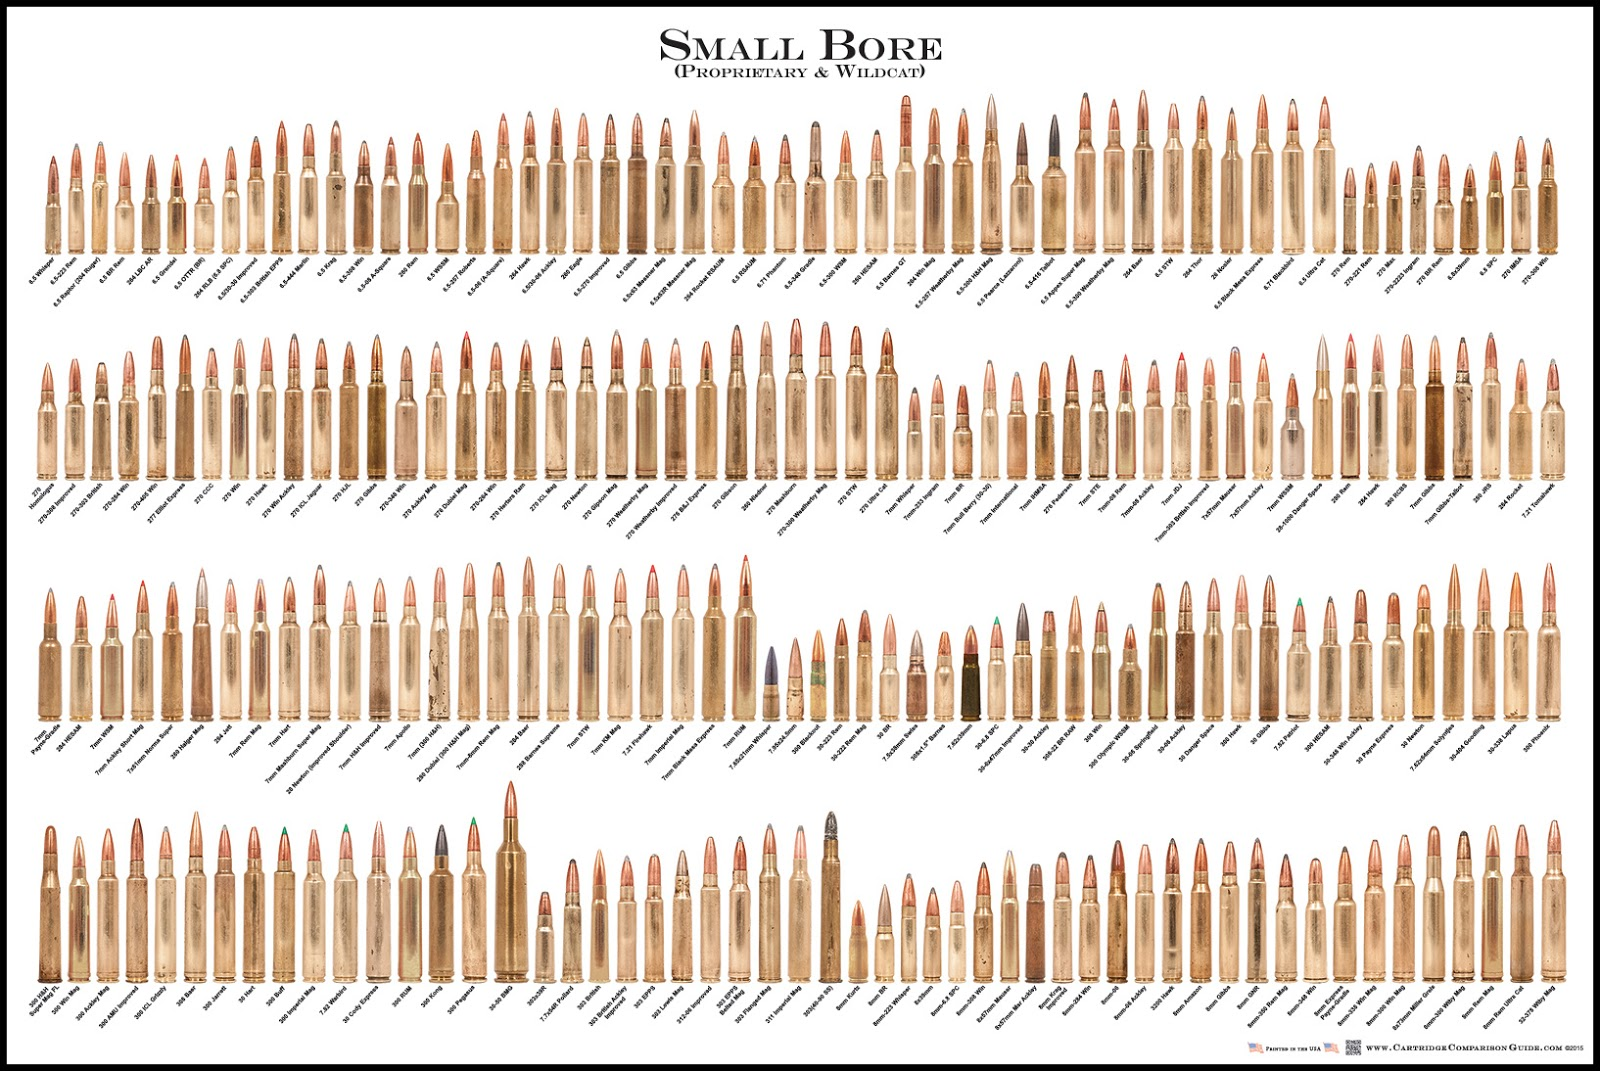 Small Bore Cartridge Comparison Guide Poster